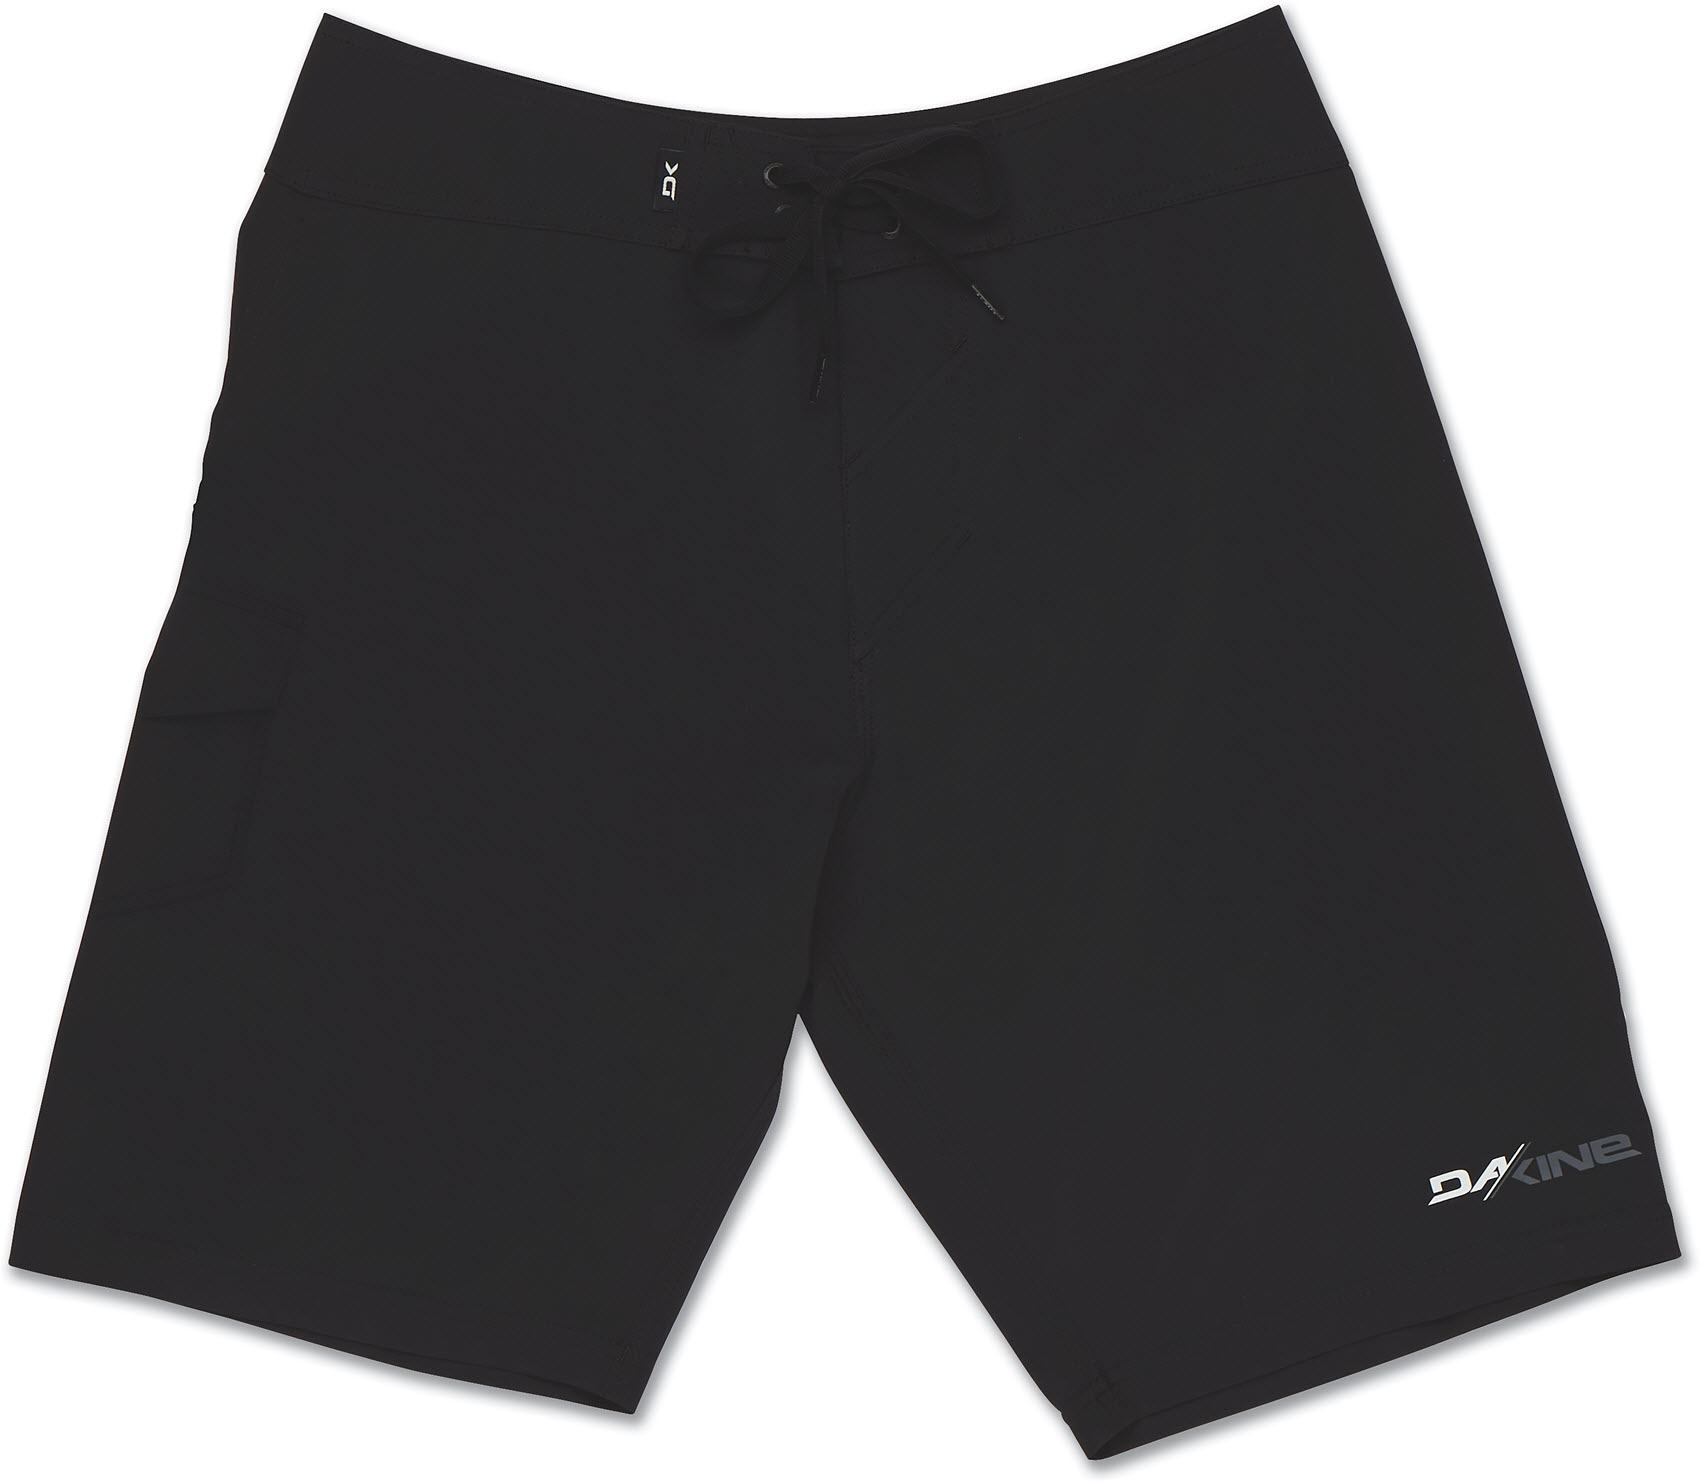 dakine prime board short 2016 in black 32